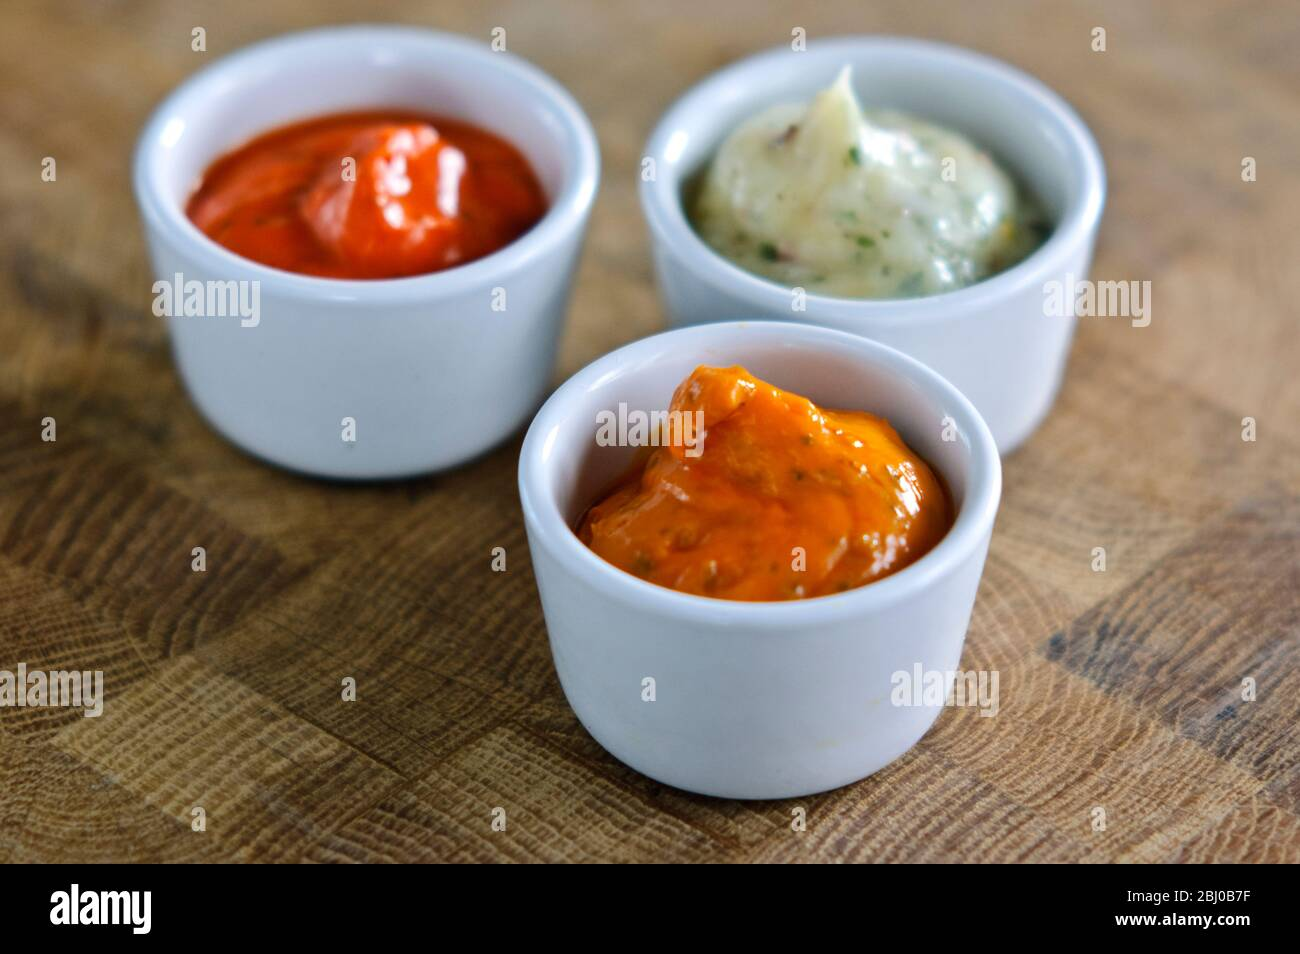 Small pots of commercial sauces used for glazing meaat before grilling. Also can be used as relish - Stock Photo